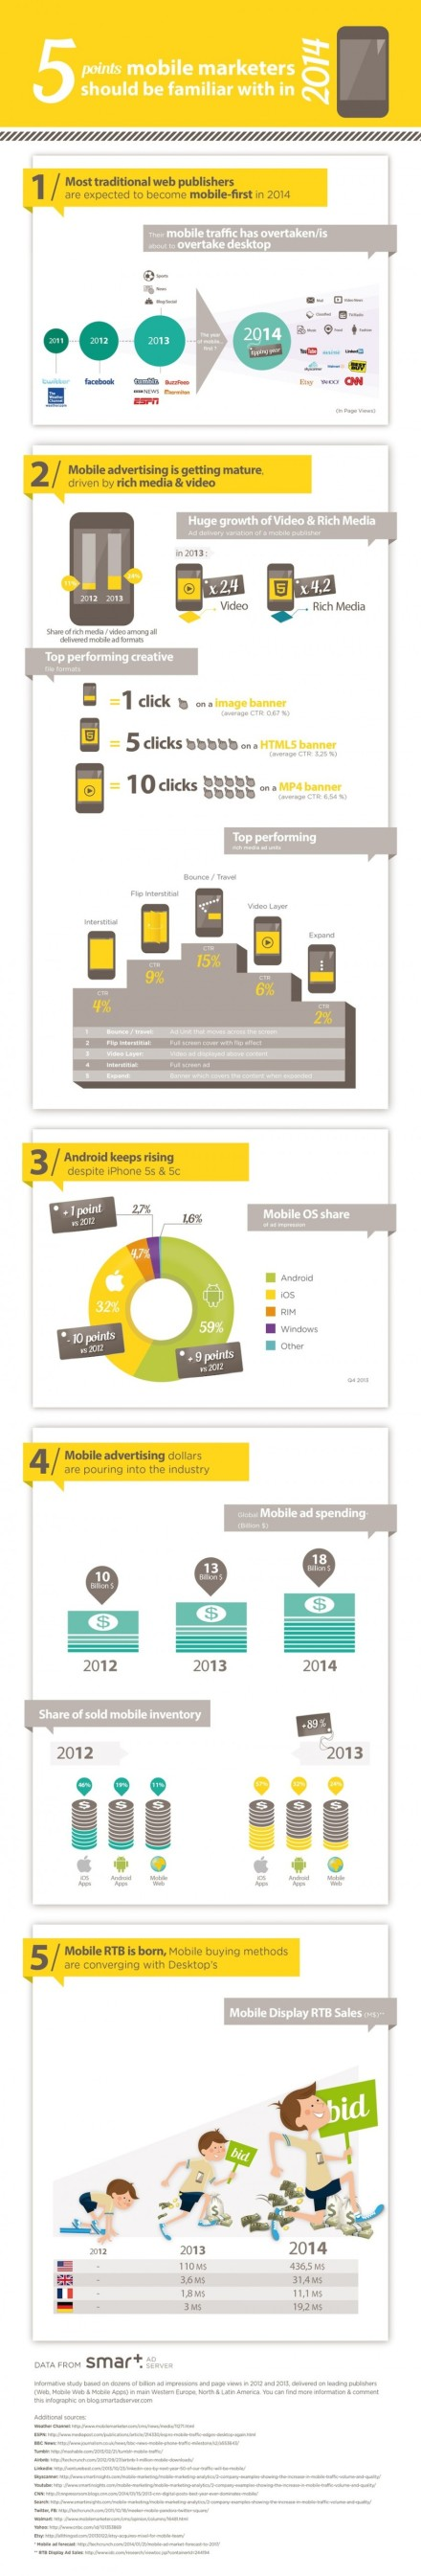 Mobile marketing massive growth of video in 2014